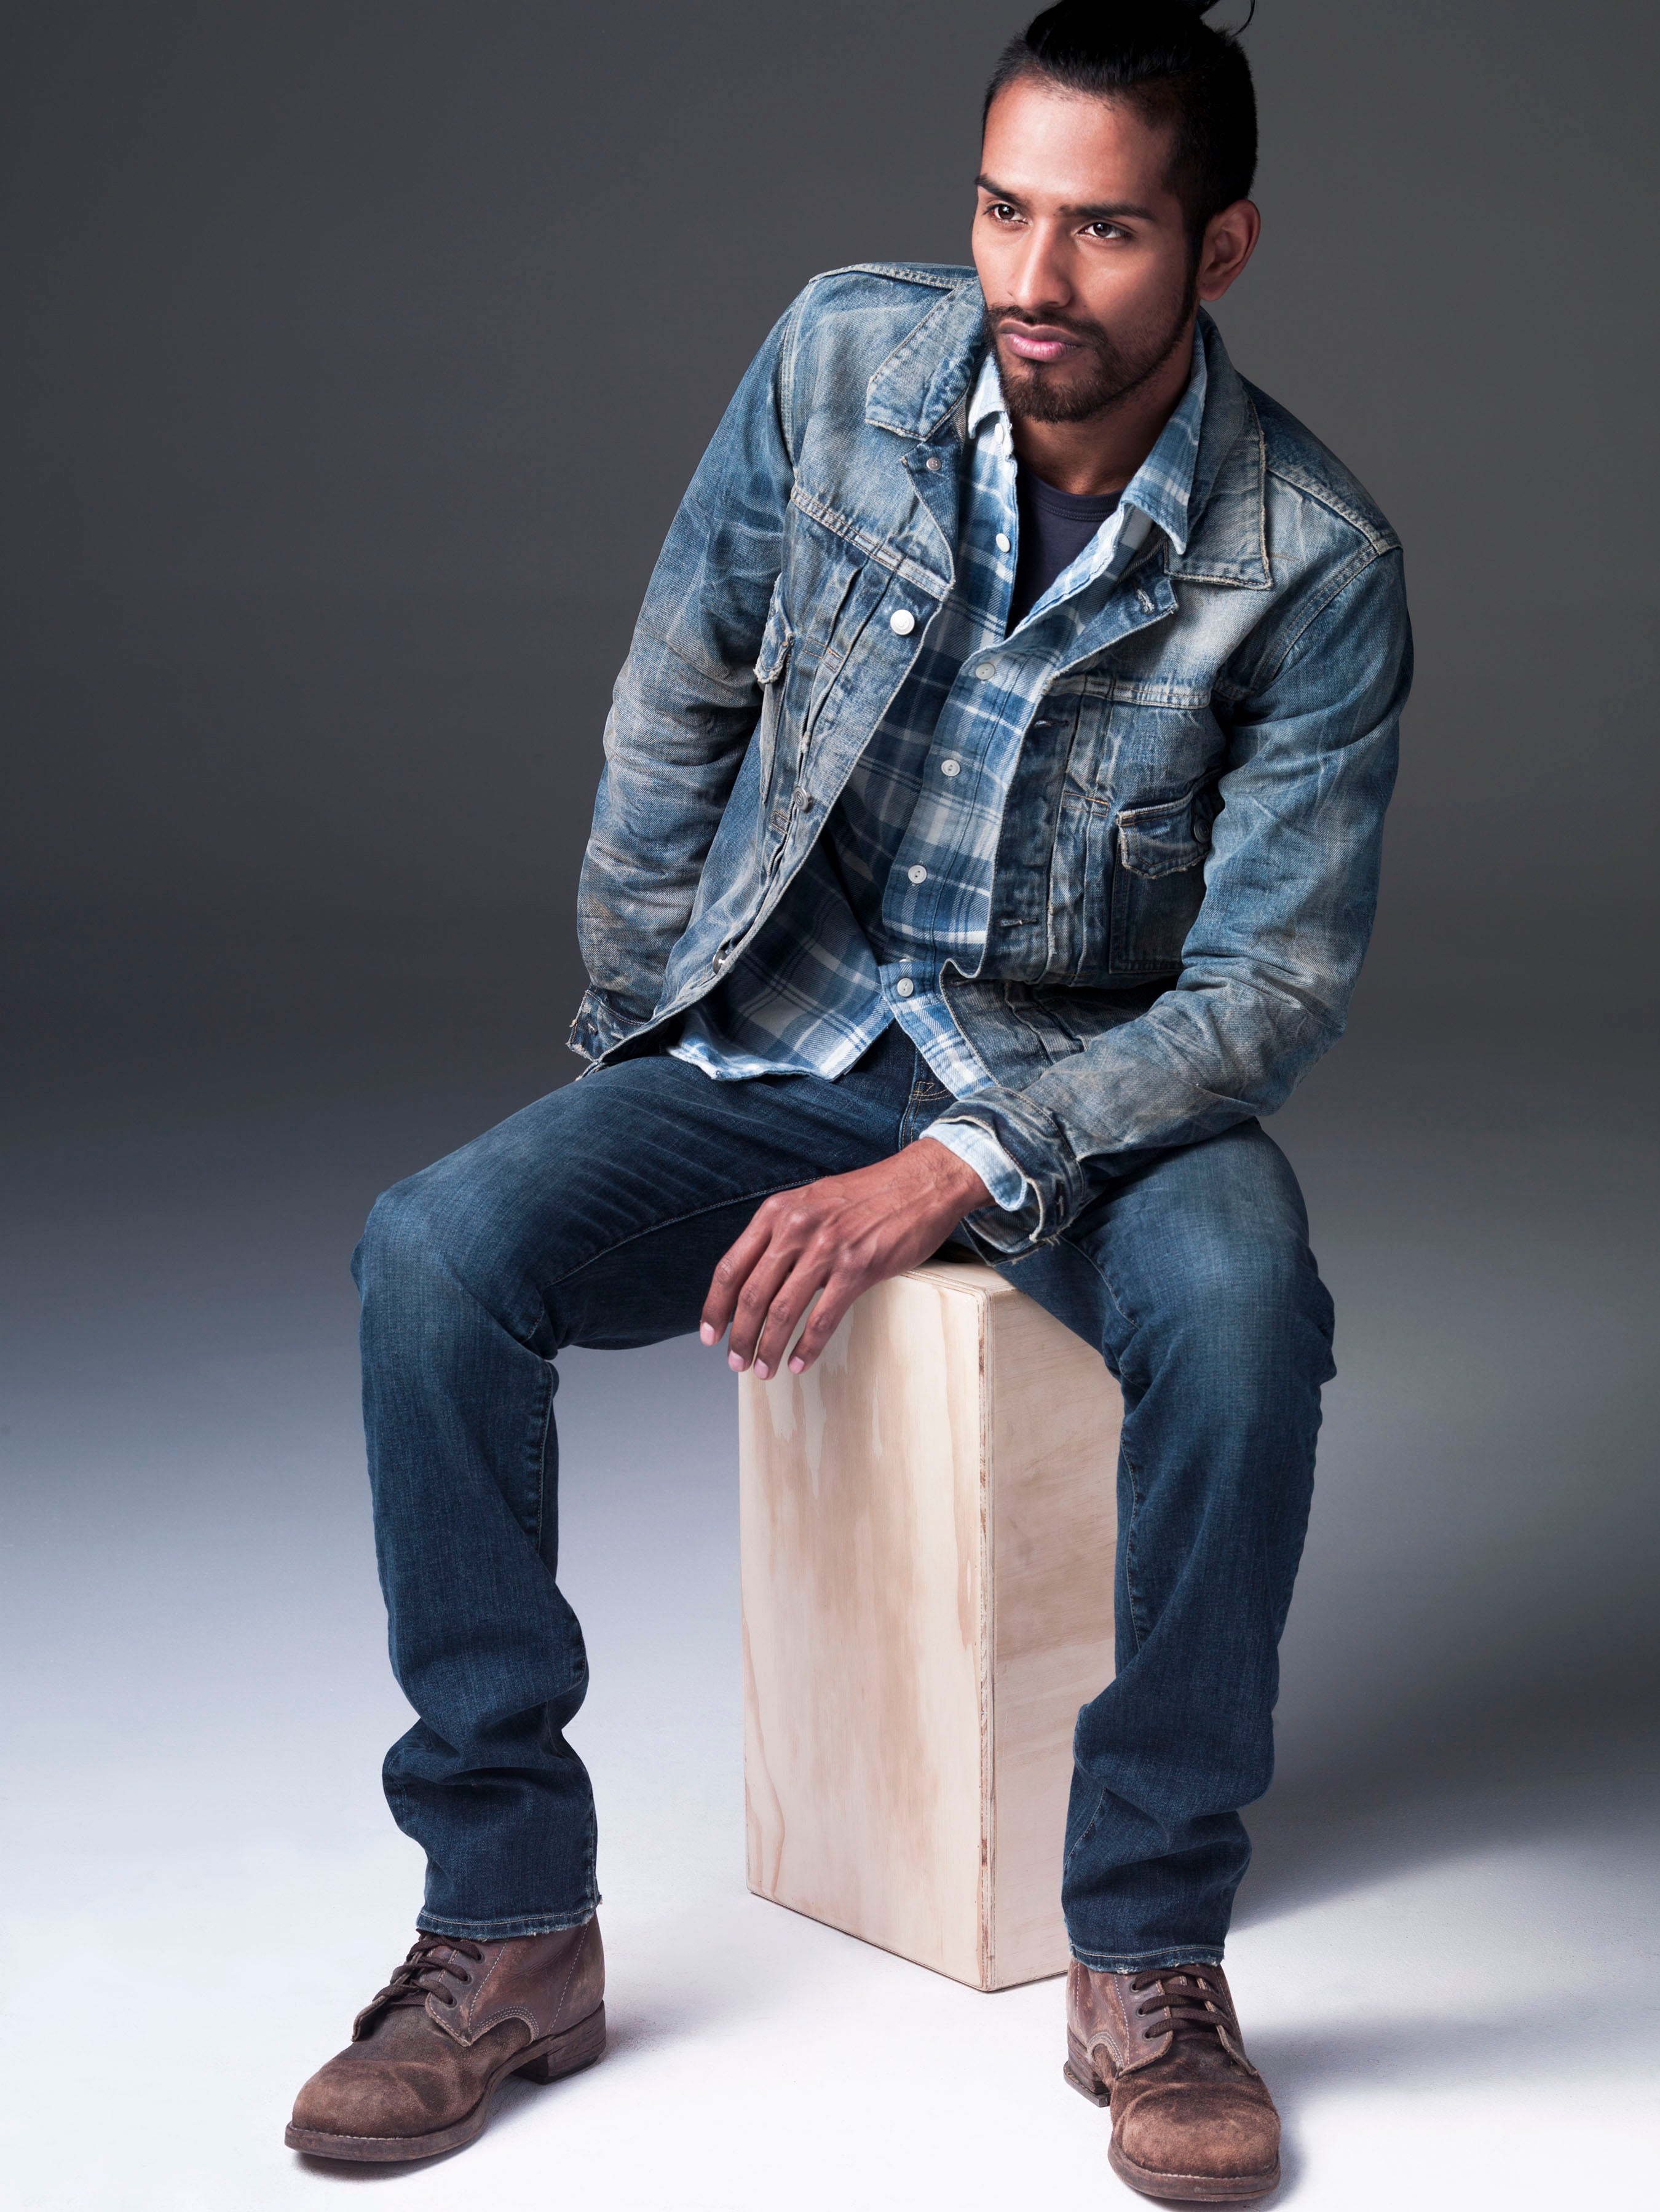 Ponytailed and bearded dark skinned model sitting on wooden box while leaning over to his left side. He is wearing S.M.N Studio's Trucker Jacket in Morrison with a plaid shirt underneath, Bond in Odyssey slim straight jeans, and dark brown boots.